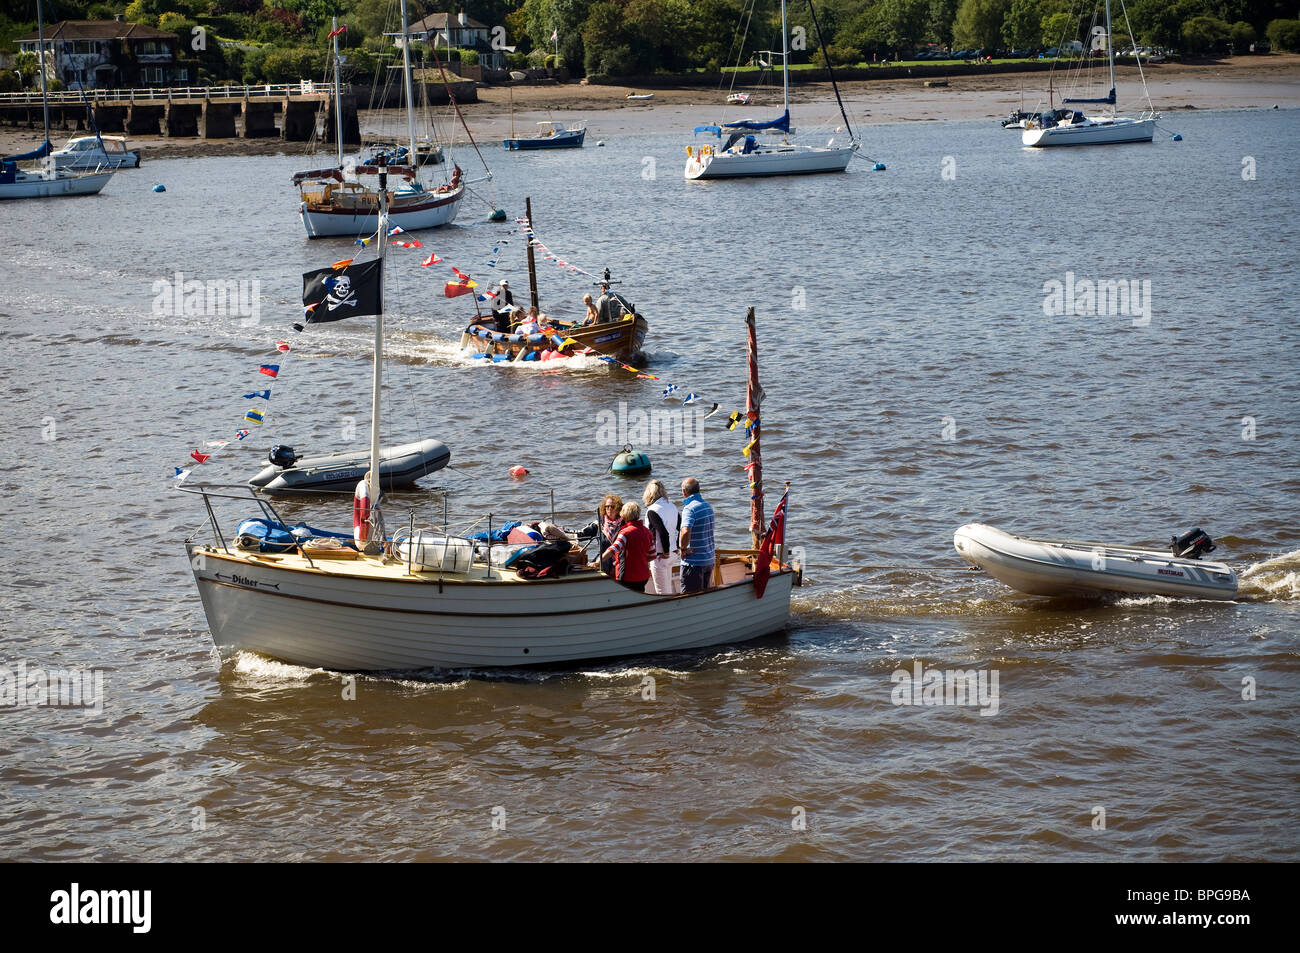 Messing about on the River Dart,Swallows and amazons,Dittisham,Jolly Roger,Ditisham ferry from Greenway quay,Devon - Stock Image